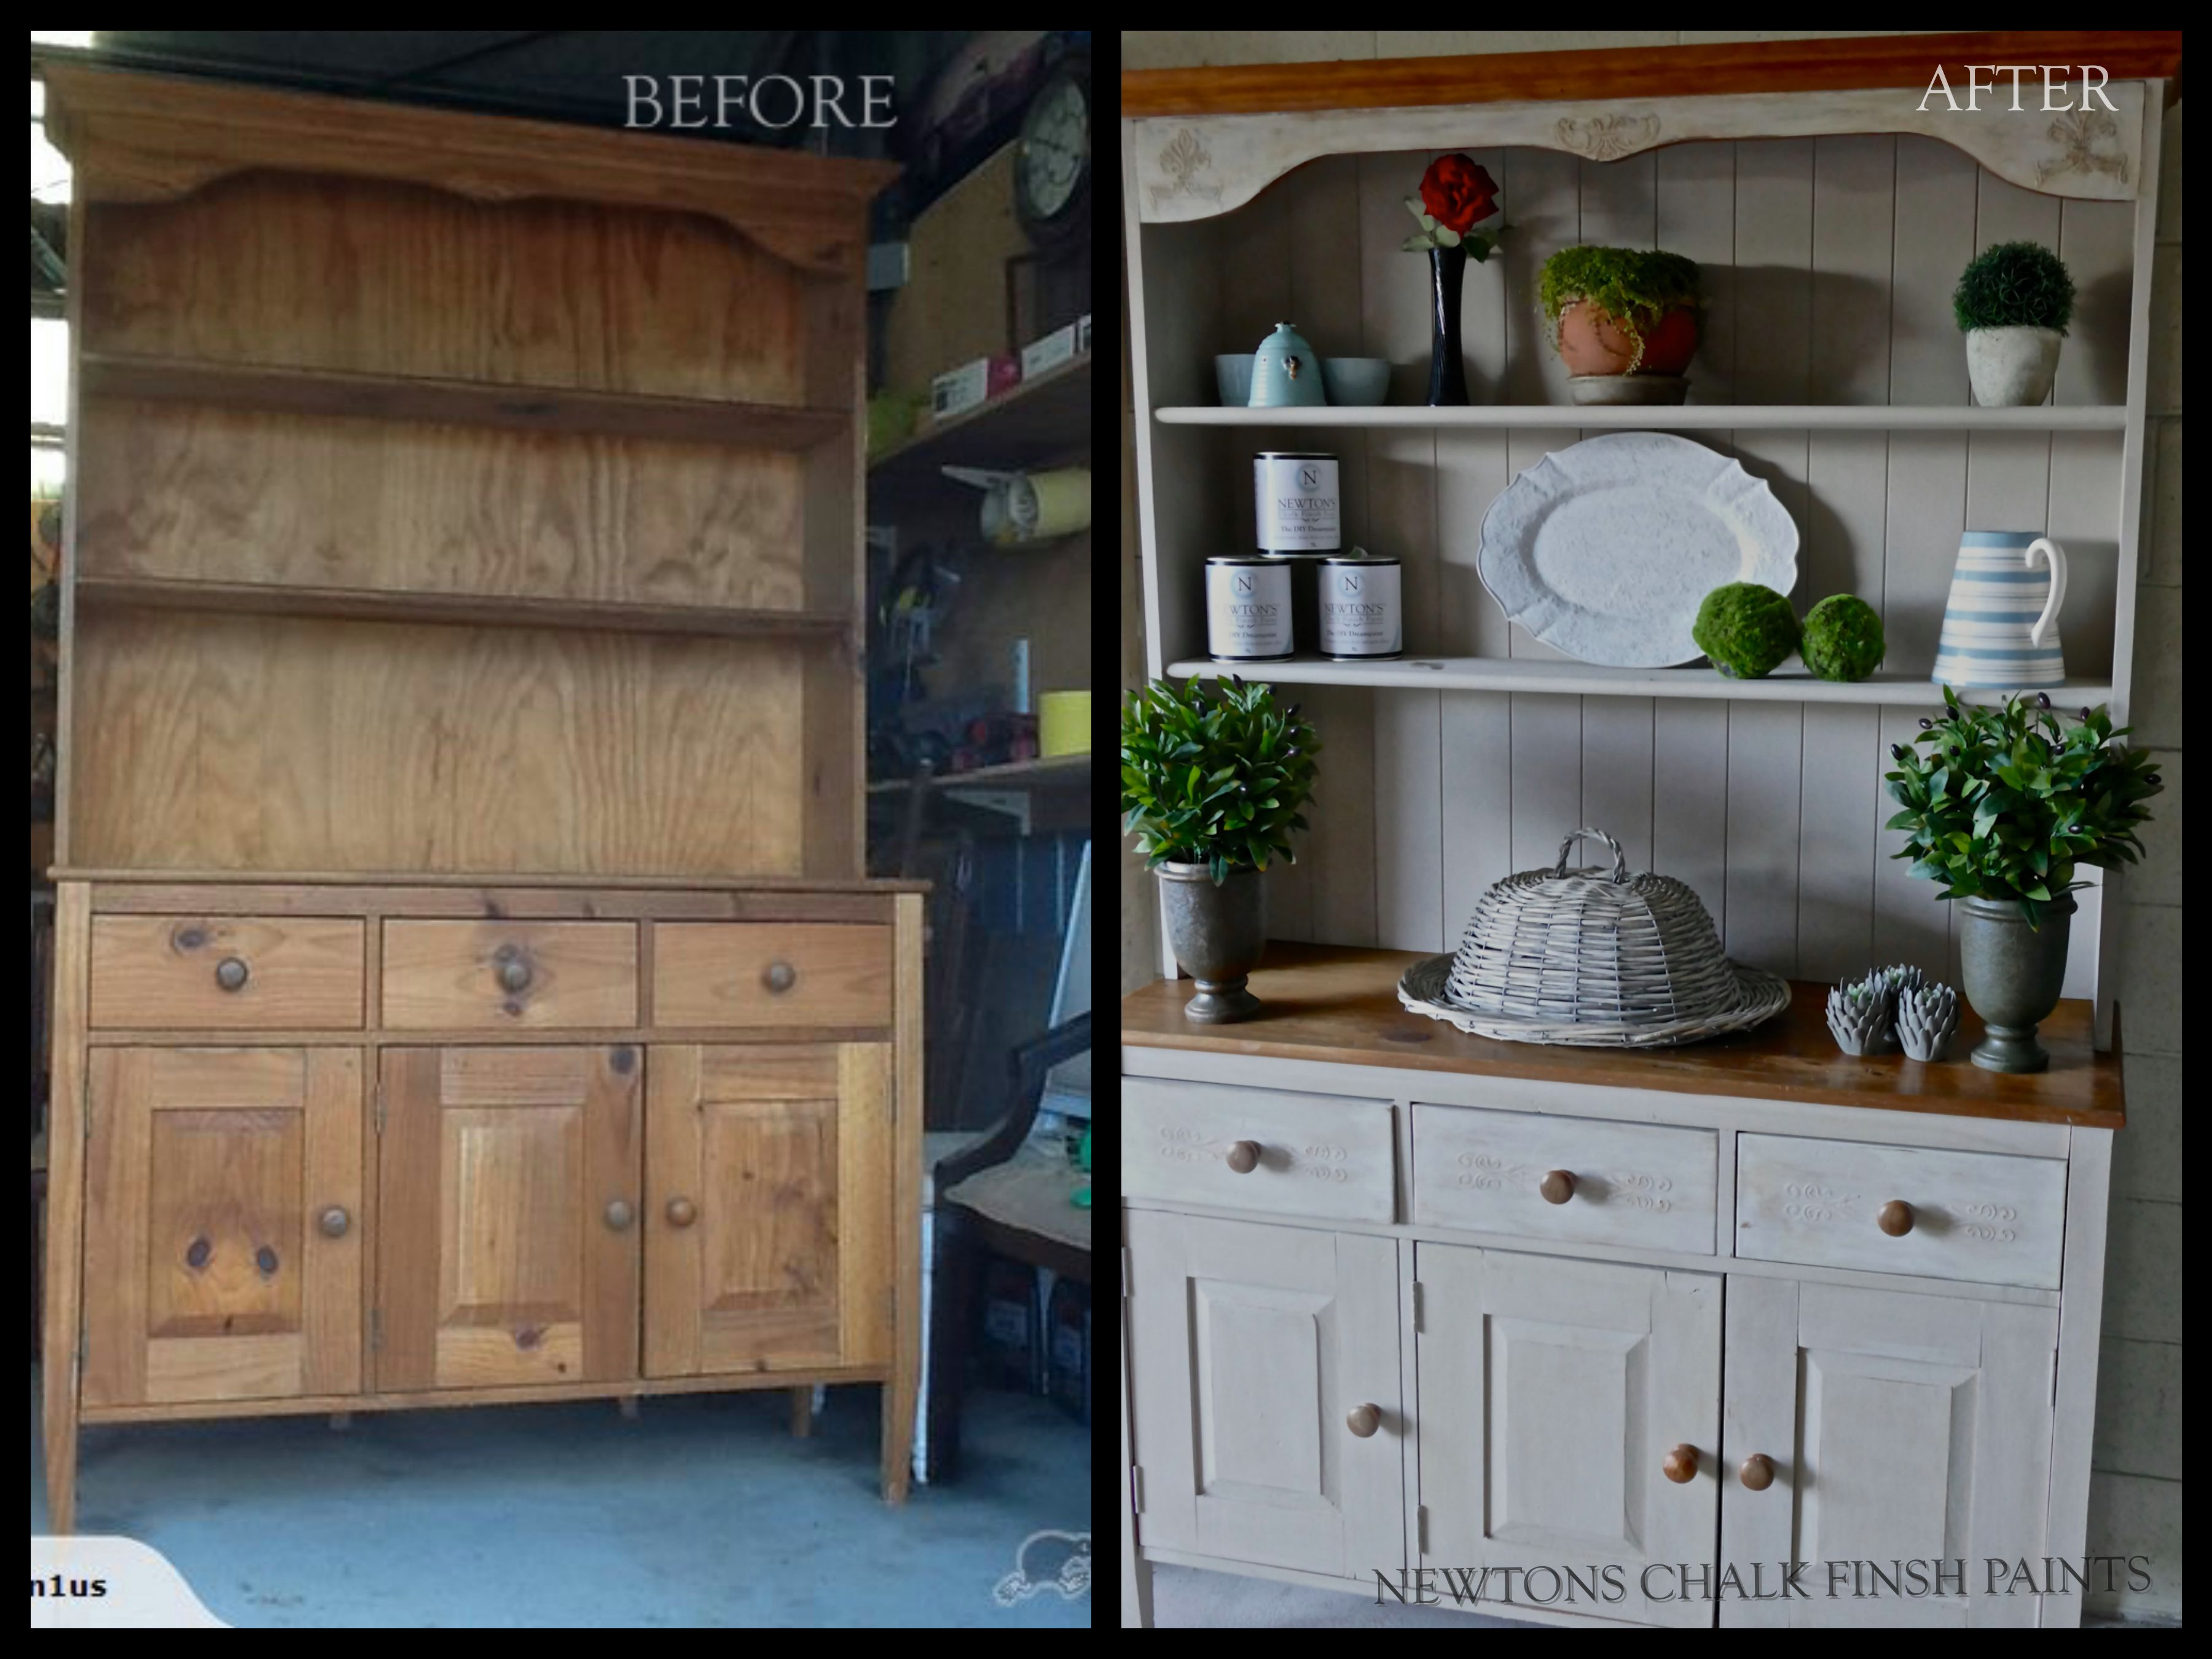 Hutch Dresser Transformed Before And After Painted In Beige Aged White Newtons